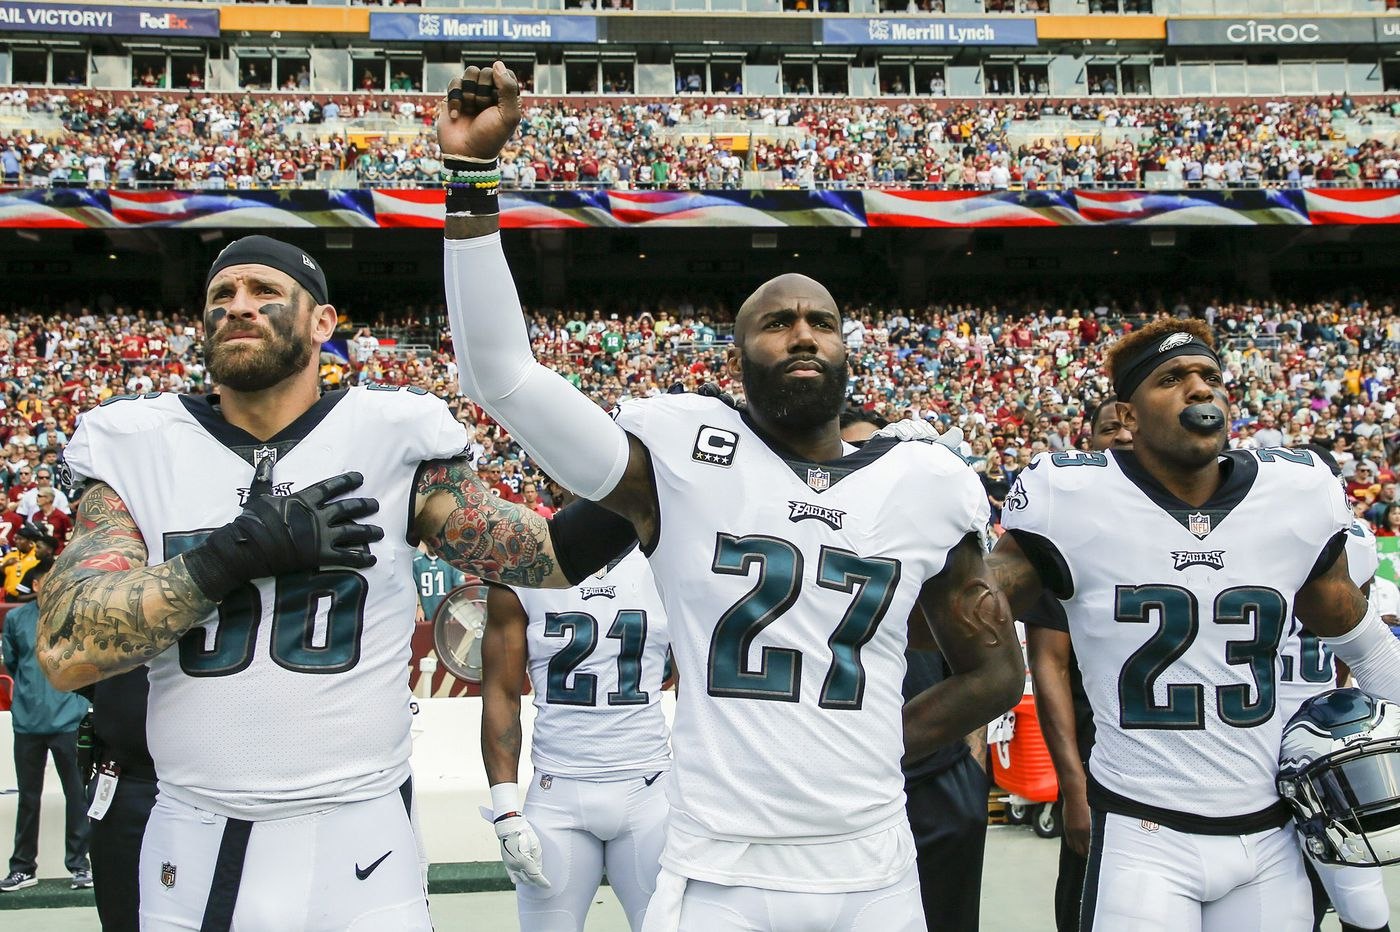 Malcolm Jenkins weighs in on NFL's actions on protests during national anthem on NBC Nightly News